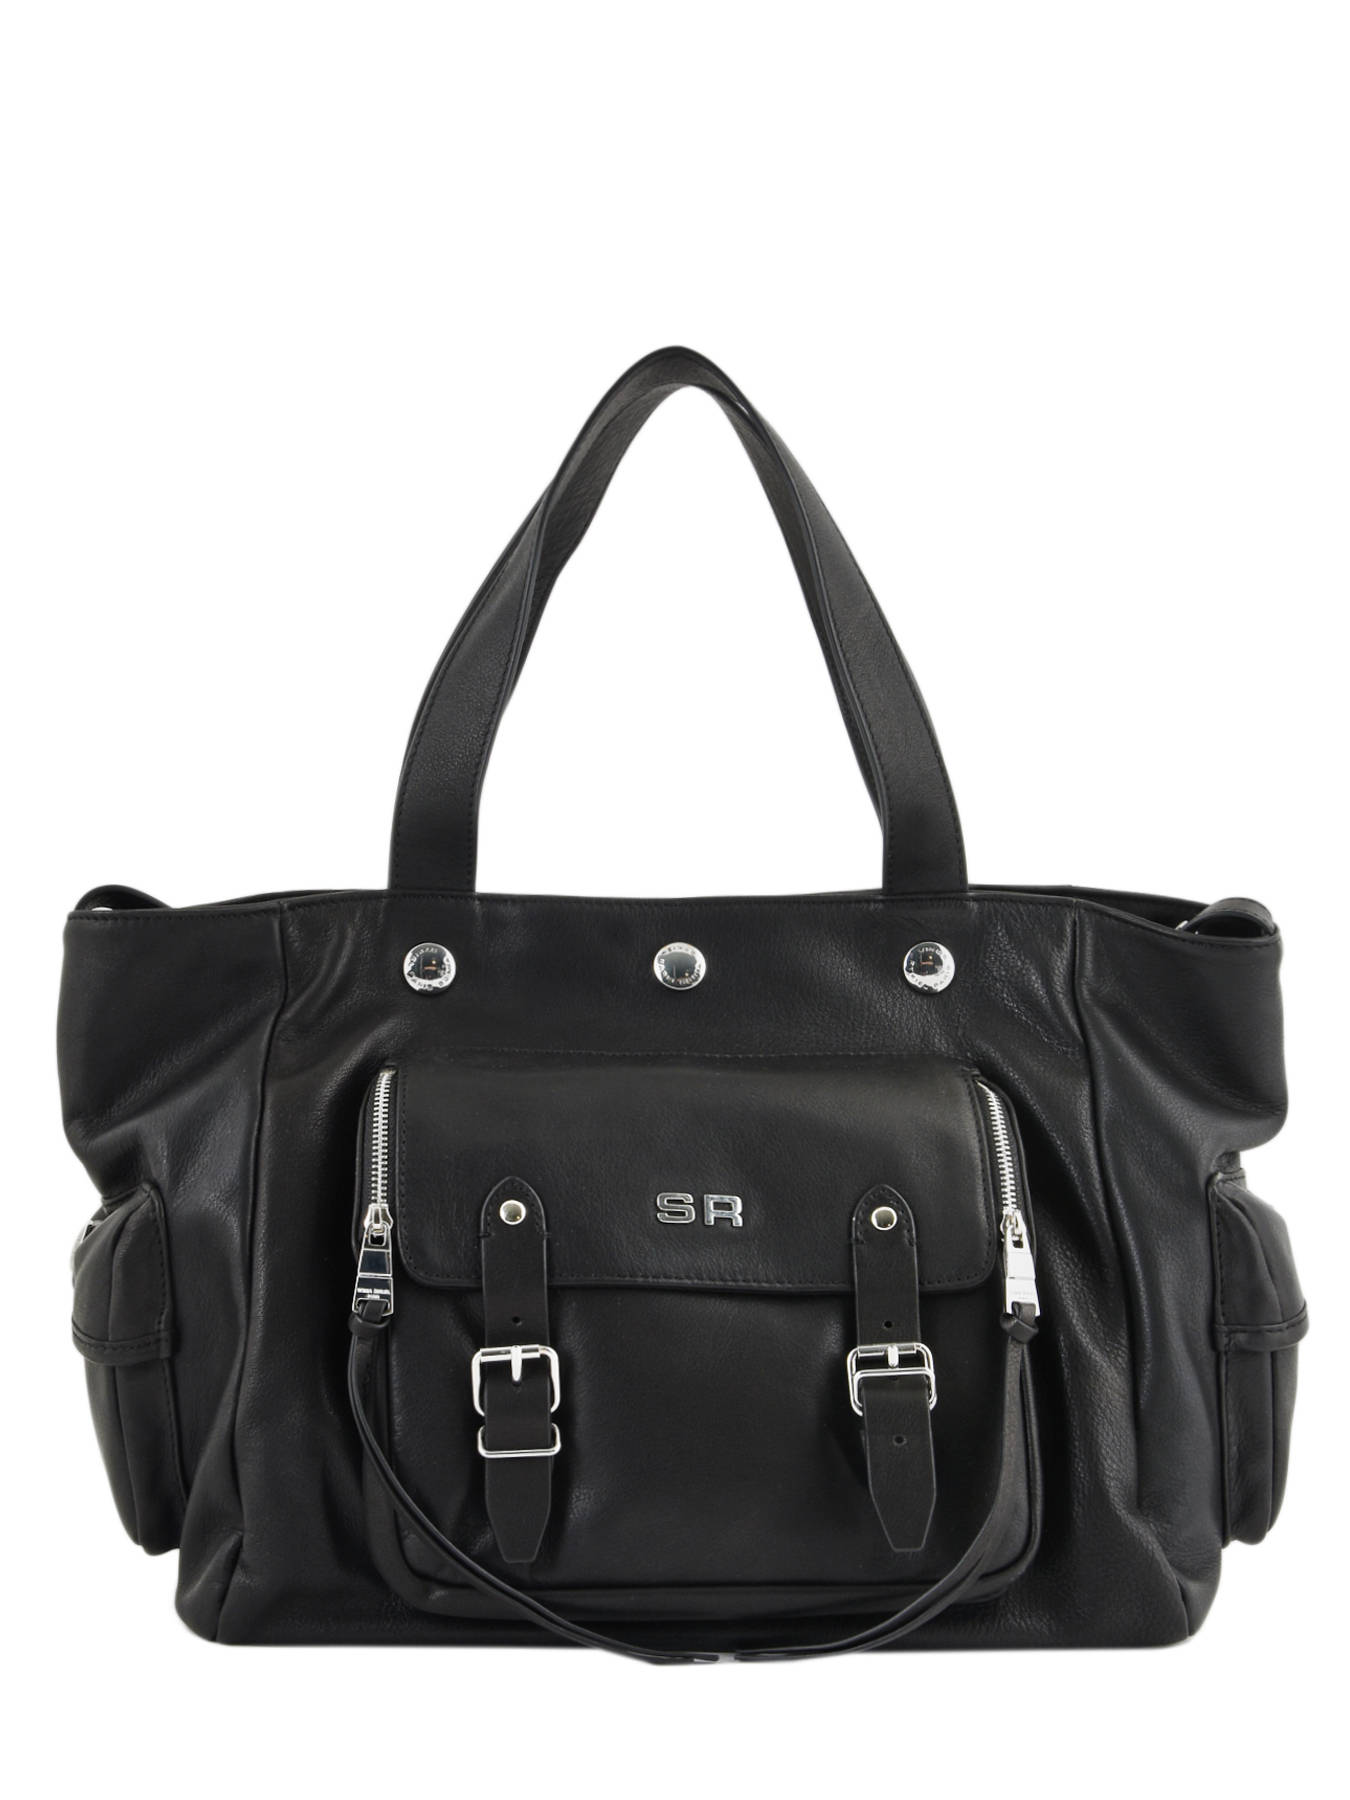 2938953d99 ... Tote Luxembourg Leather Sonia rykiel Black luxembourg 2296-44 ...